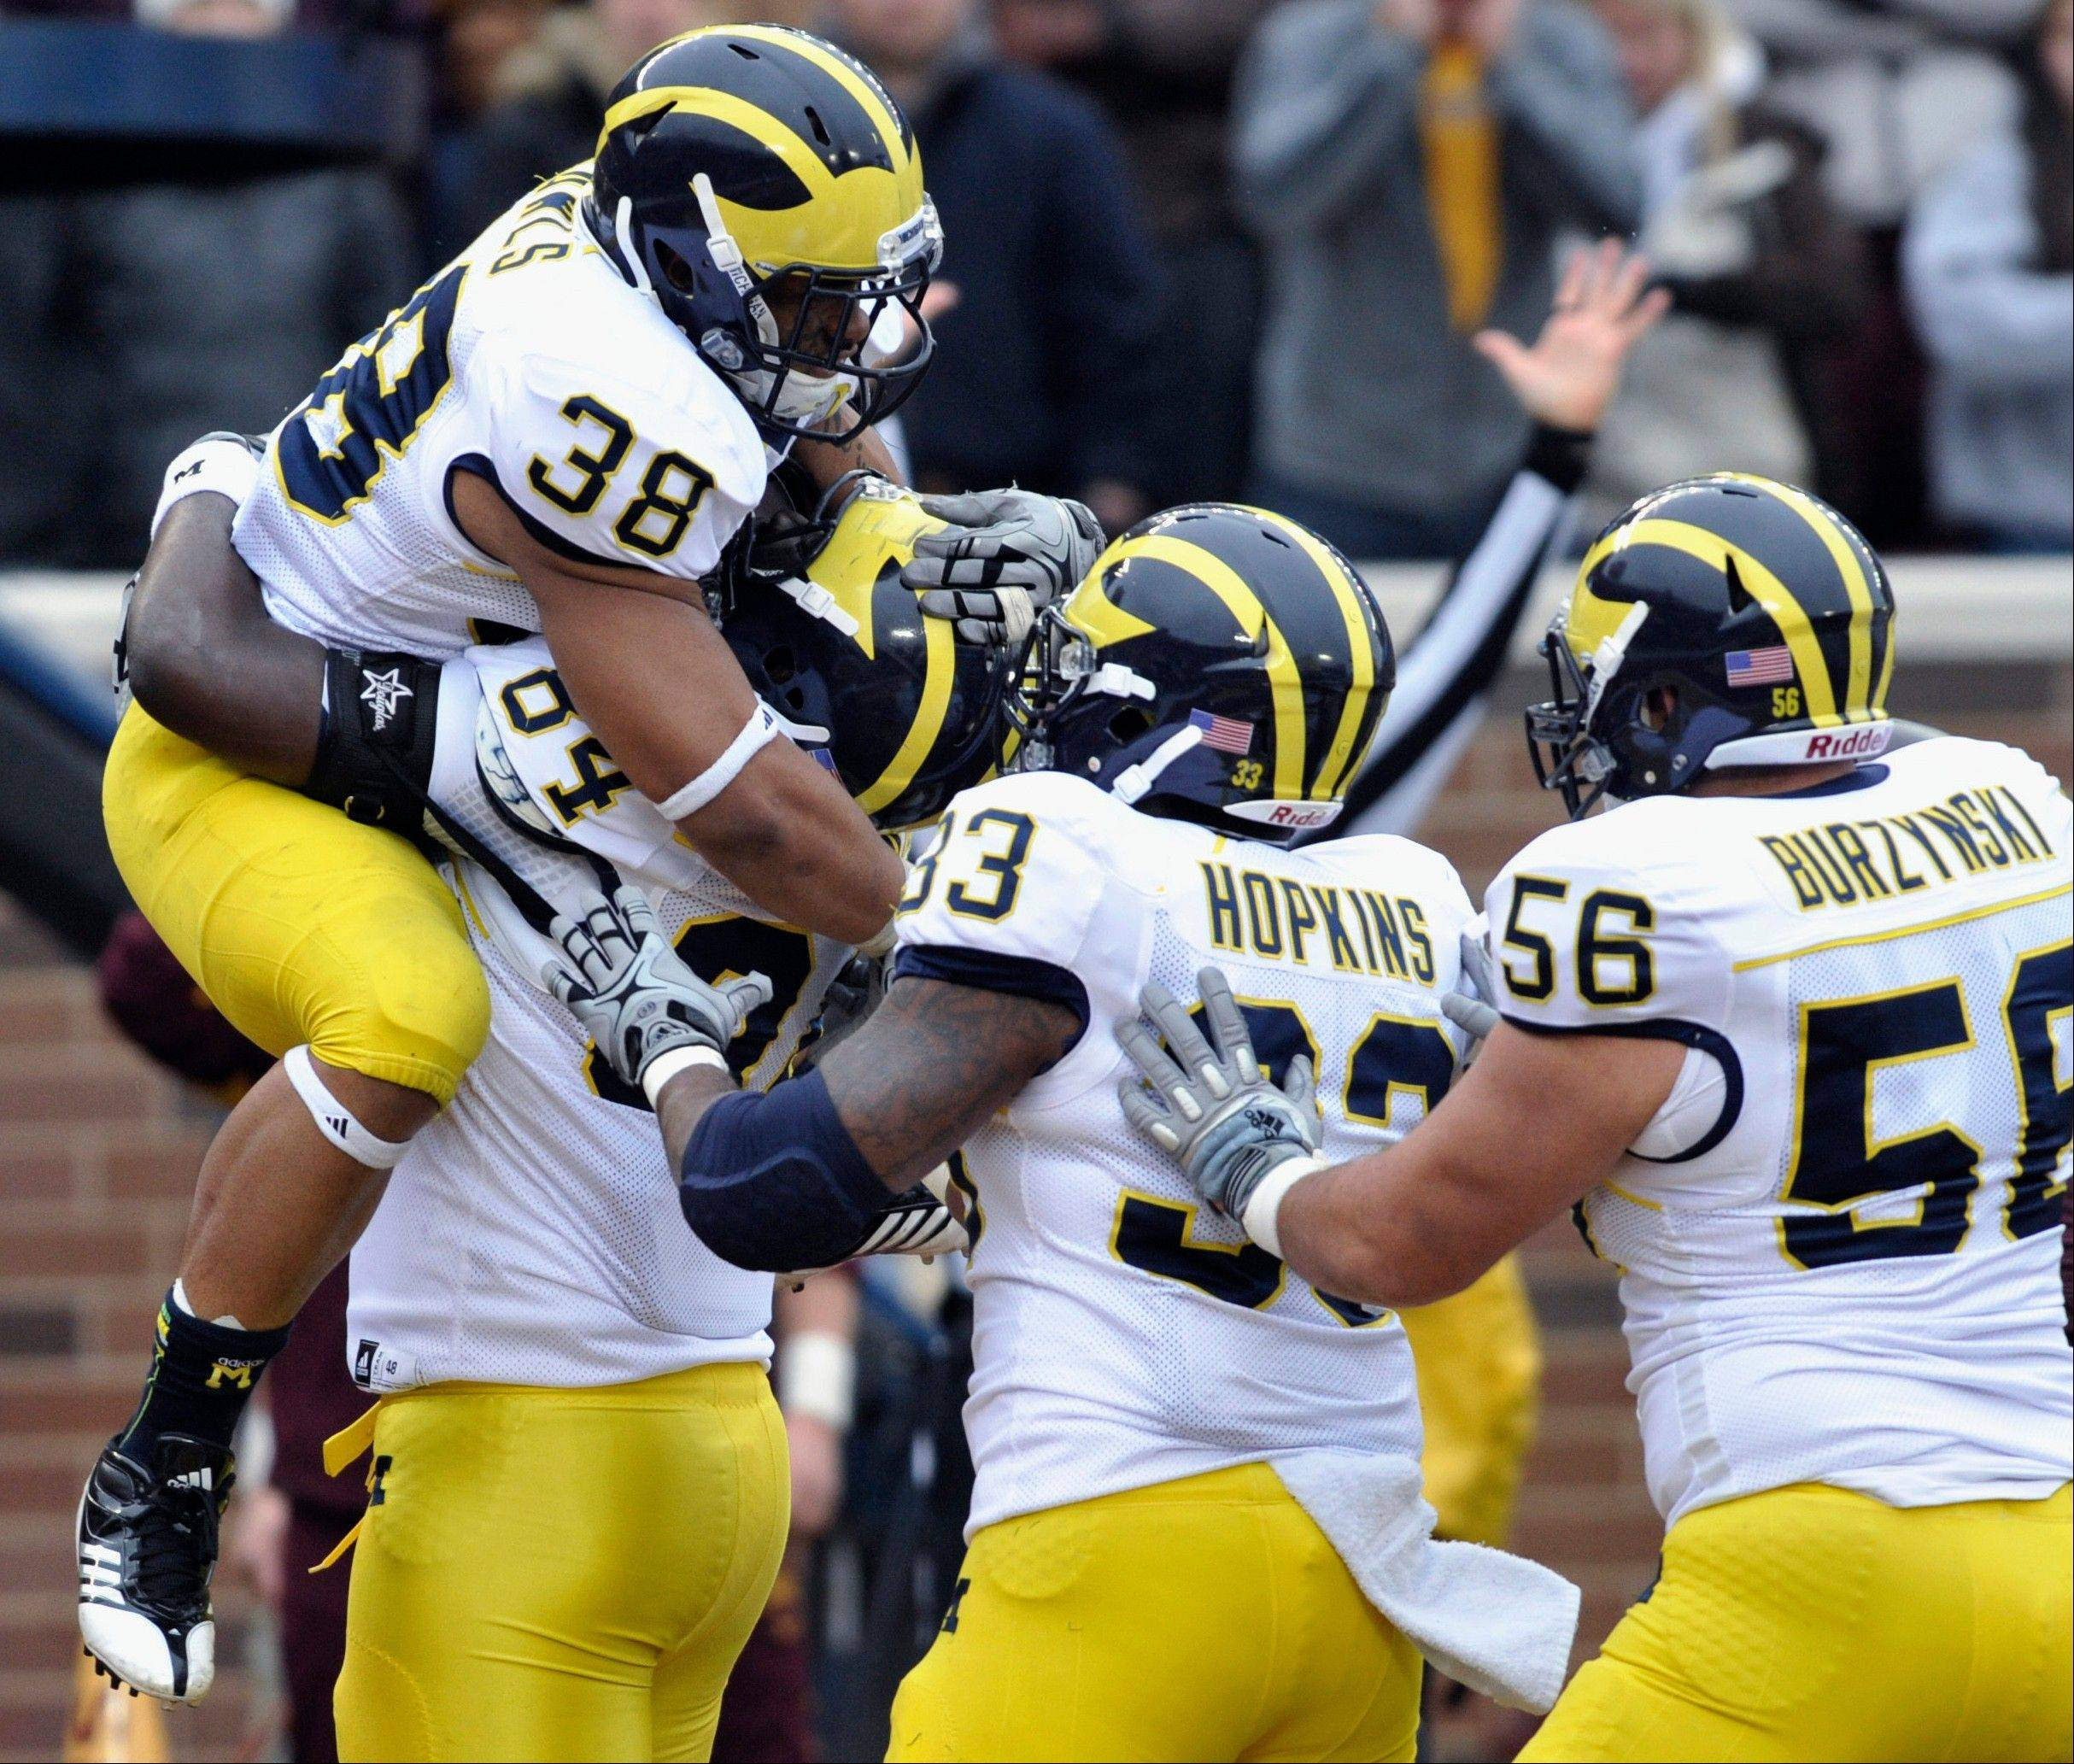 Michigan's A.J. Williams, second form left second, hoists running back Thomas Rawls (38) after Rawls scored a touchdown Saturday against Minnesota during the second quarter in Minneapolis. Michigan's Stephen Hopkins (33) and Joey Burzynski (56) join the celebration.